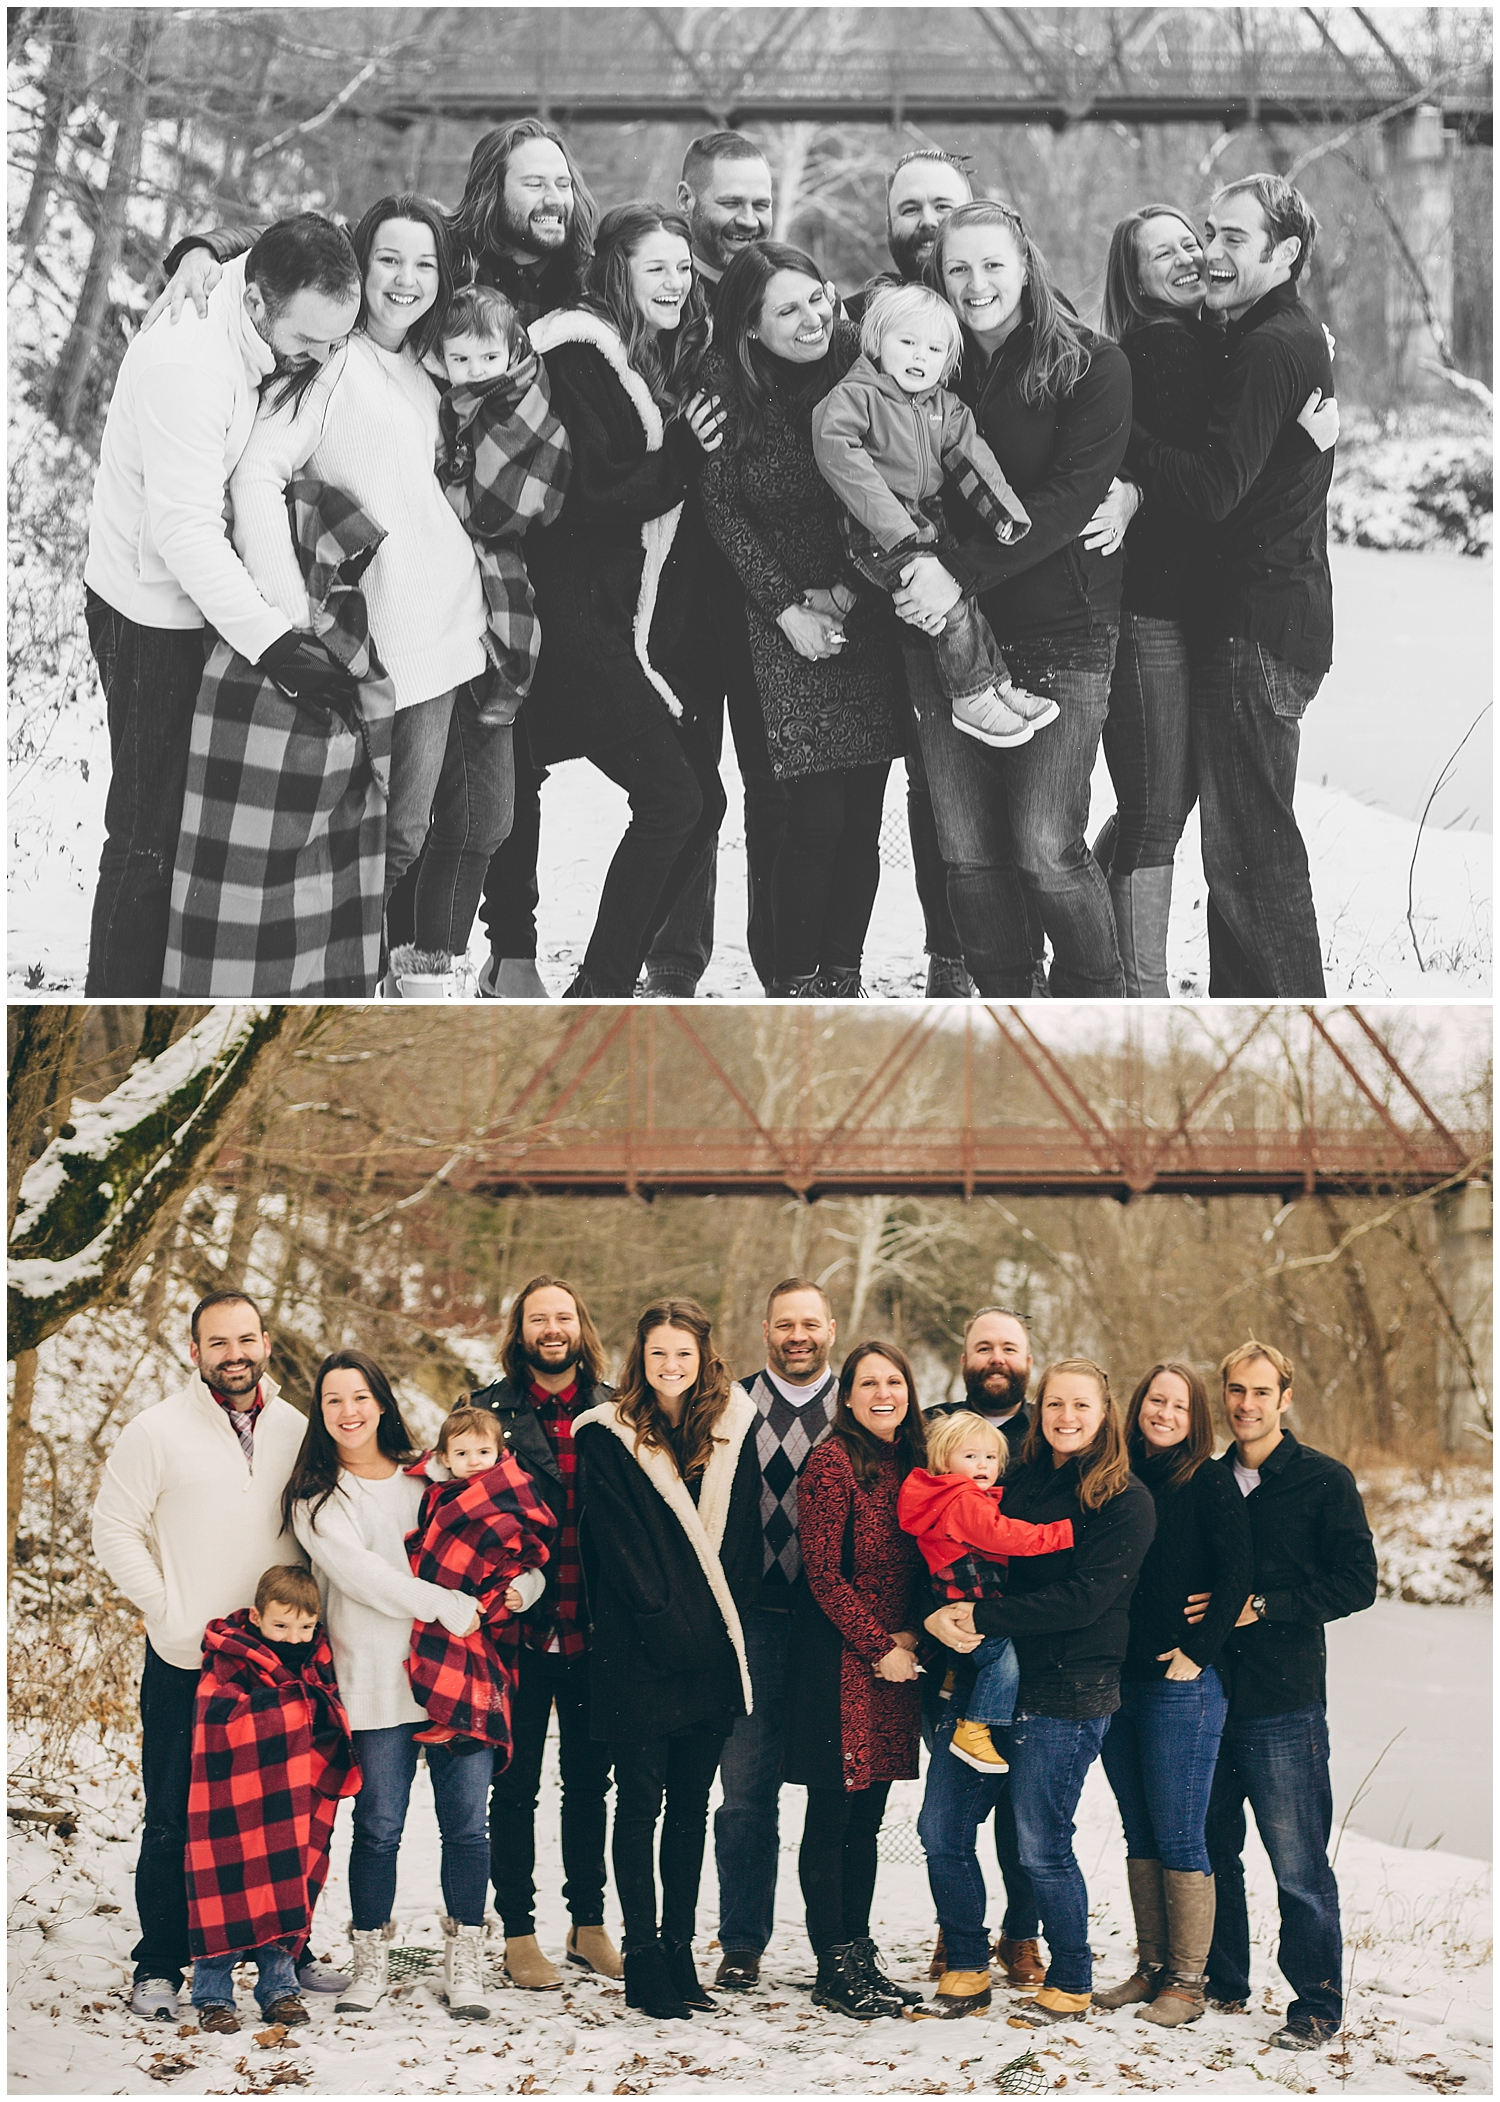 Indianapolis_Extended_Family_Photography_Winter_Session1.jpg